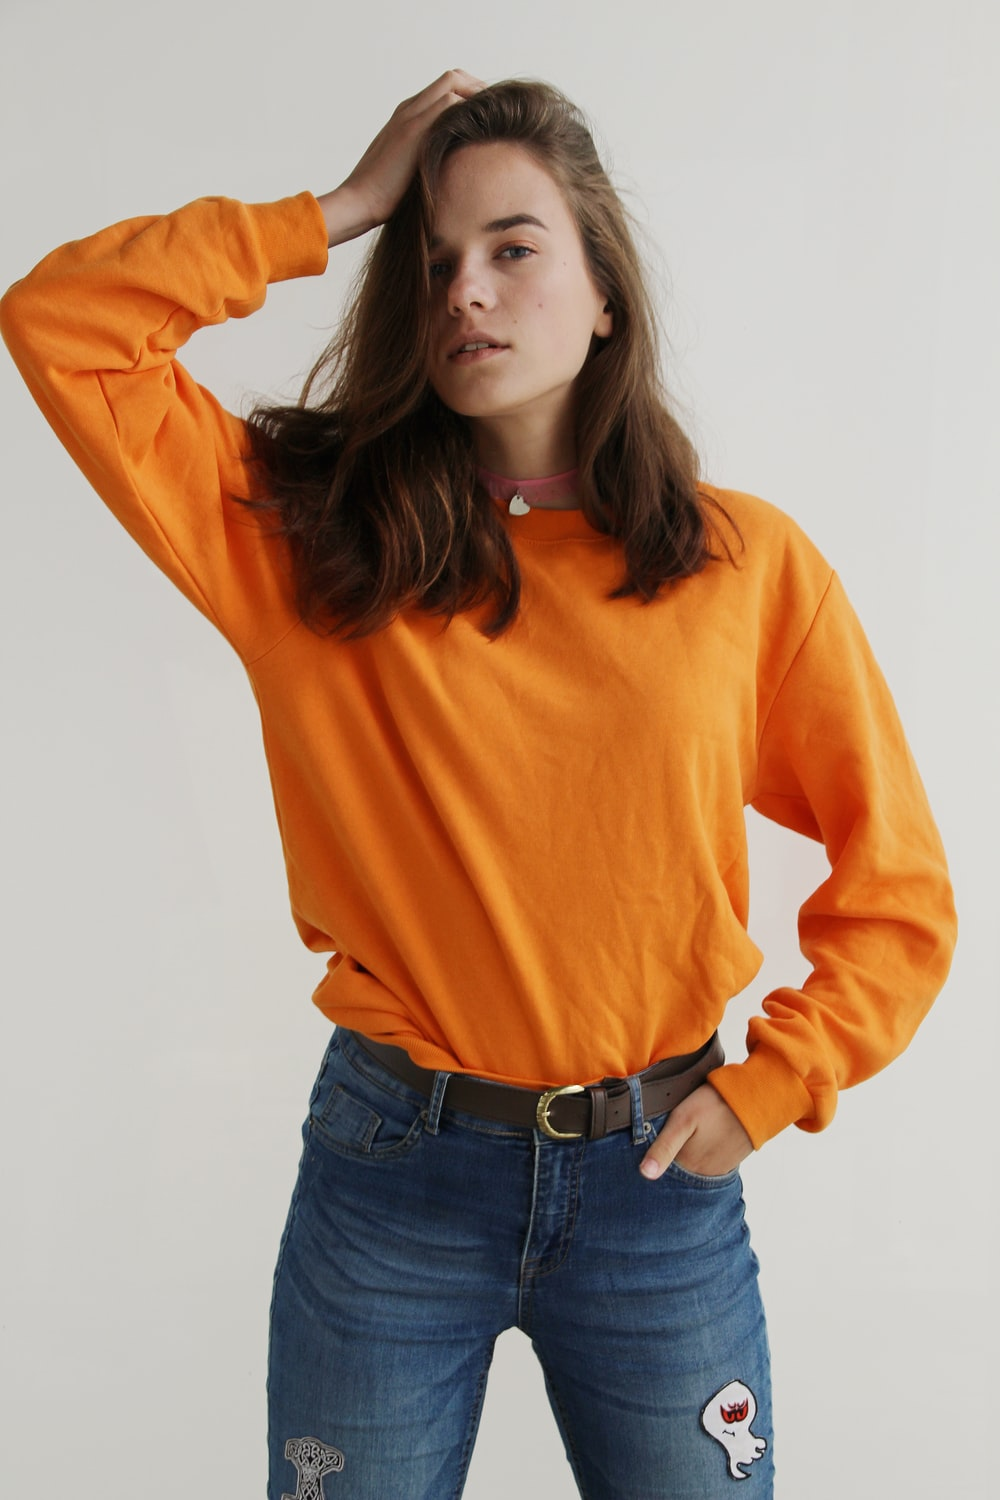 woman wearing orange crew-neck sweatshirt standing while putting right hand on her head